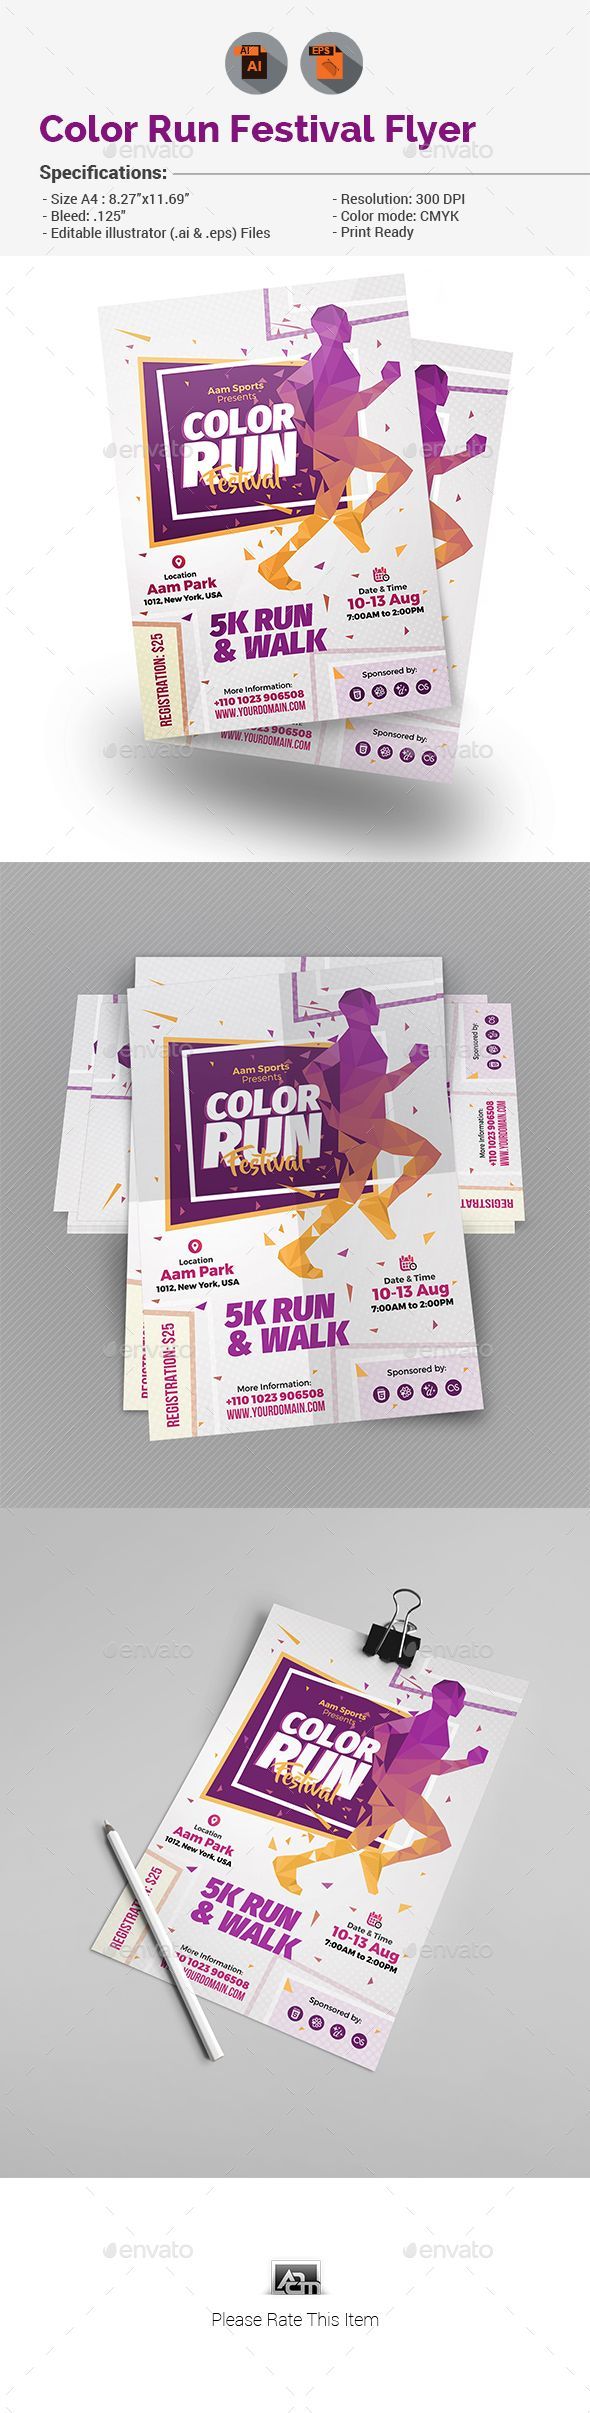 Color Run Festival Flyer Template — Vector EPS #event #sport • Download ➝ https://graphicriver.net/item/color-run-festival-flyer-template/19287525?ref=pxcr